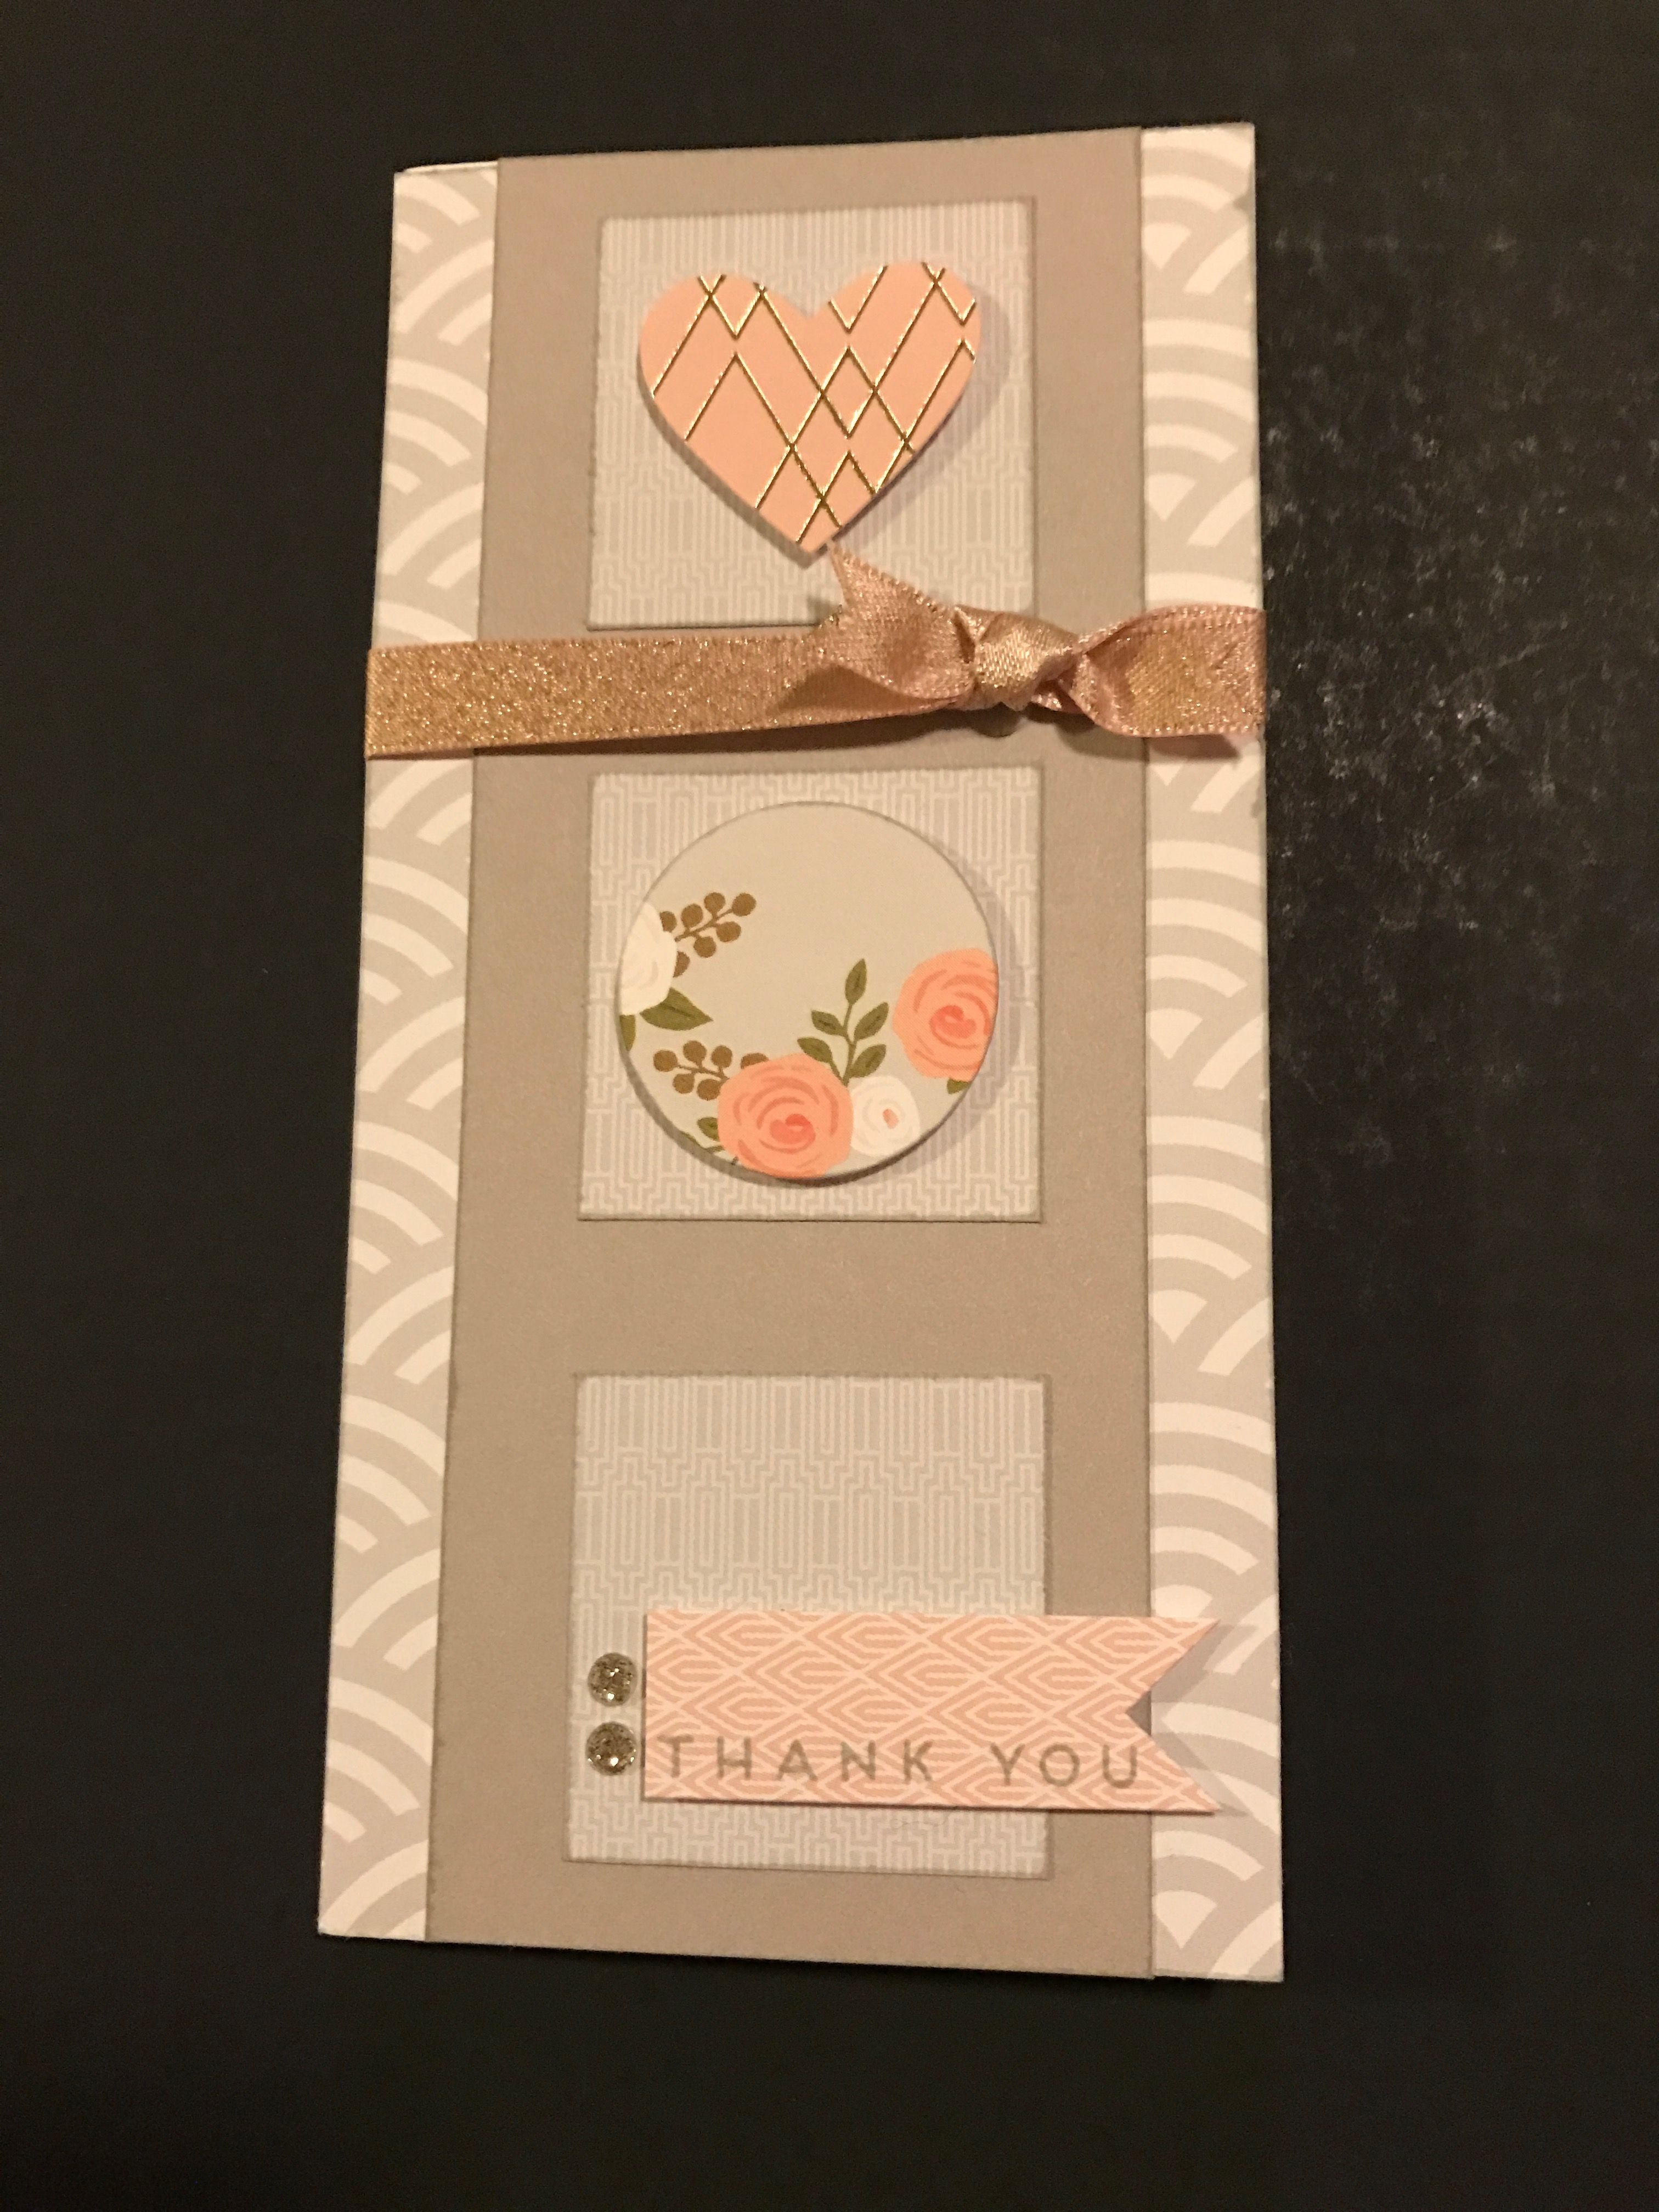 I just couldn't resist sticking to the pinks, greys & gold for this weeks Color Dare using the palette from Hello Lovely. Don't you just LOVE all the yummy complements in our WYW kits? To finish the card I added some Blush shimmer ribbon, some Gold glitter gems & stamped THANK YOU  in Whisper.